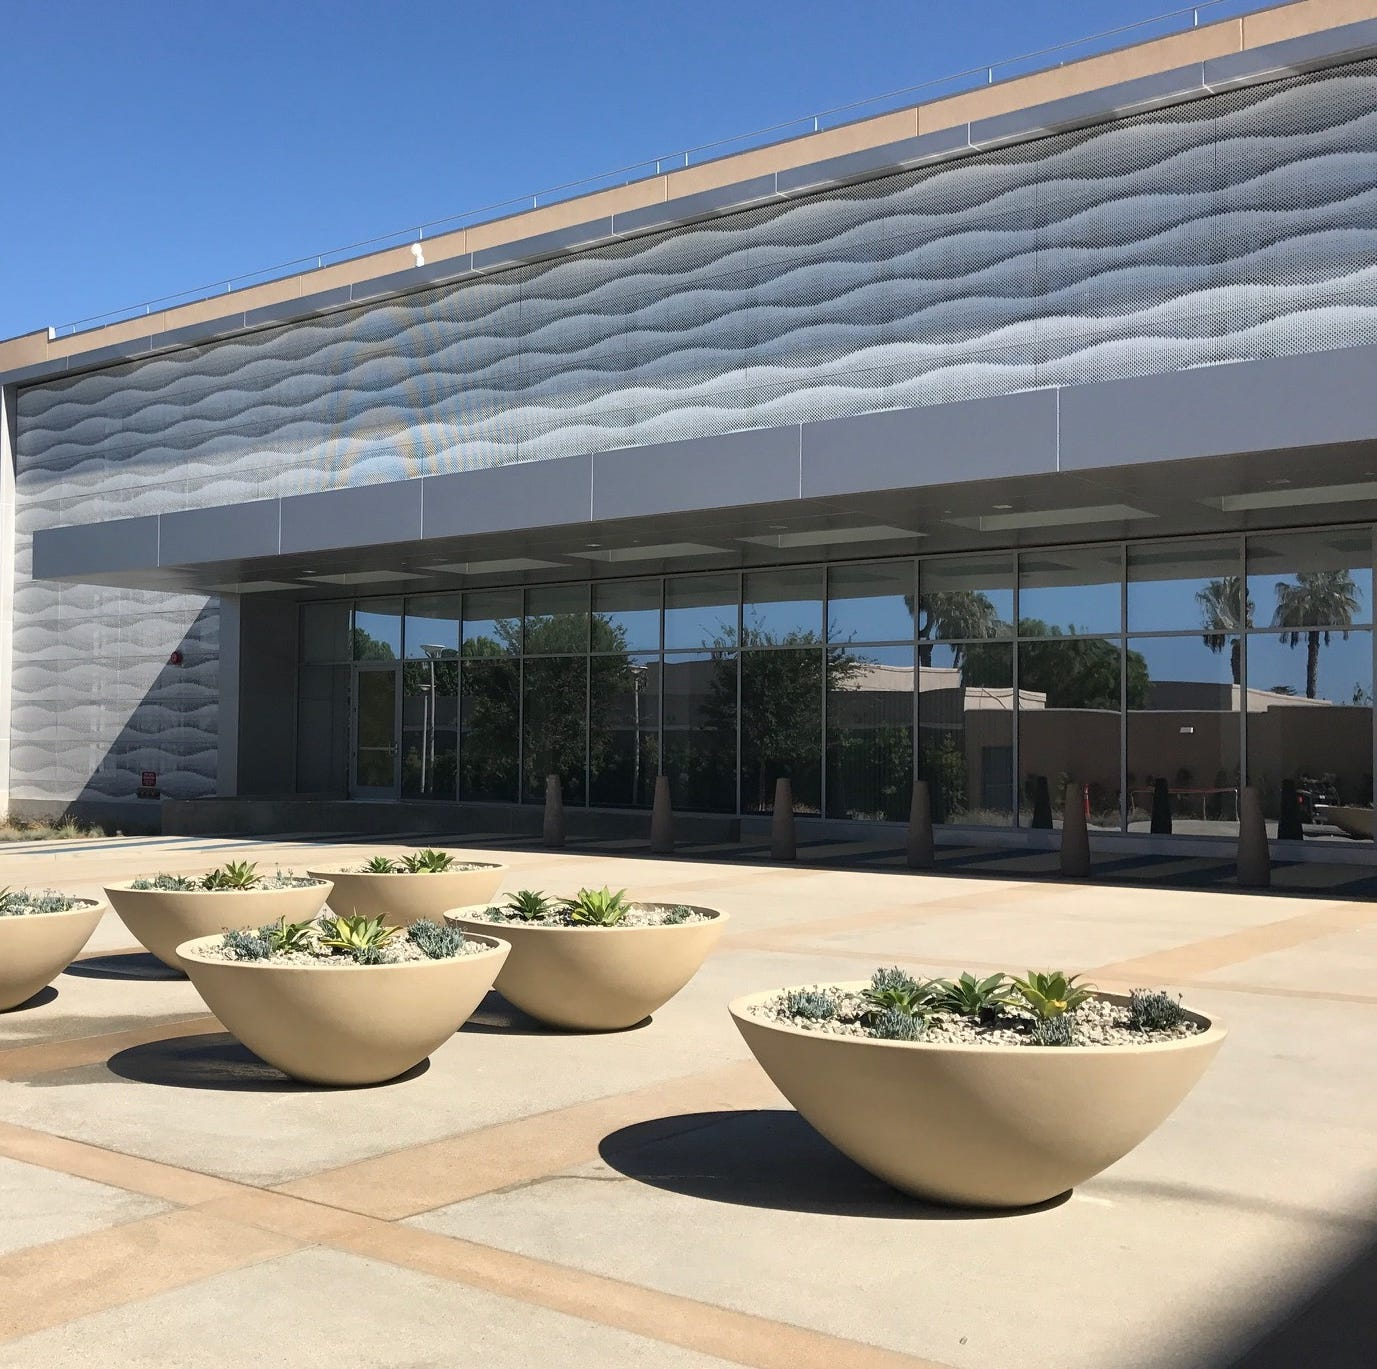 Ventura County Medical Center opened a $305-million wing in 2017.